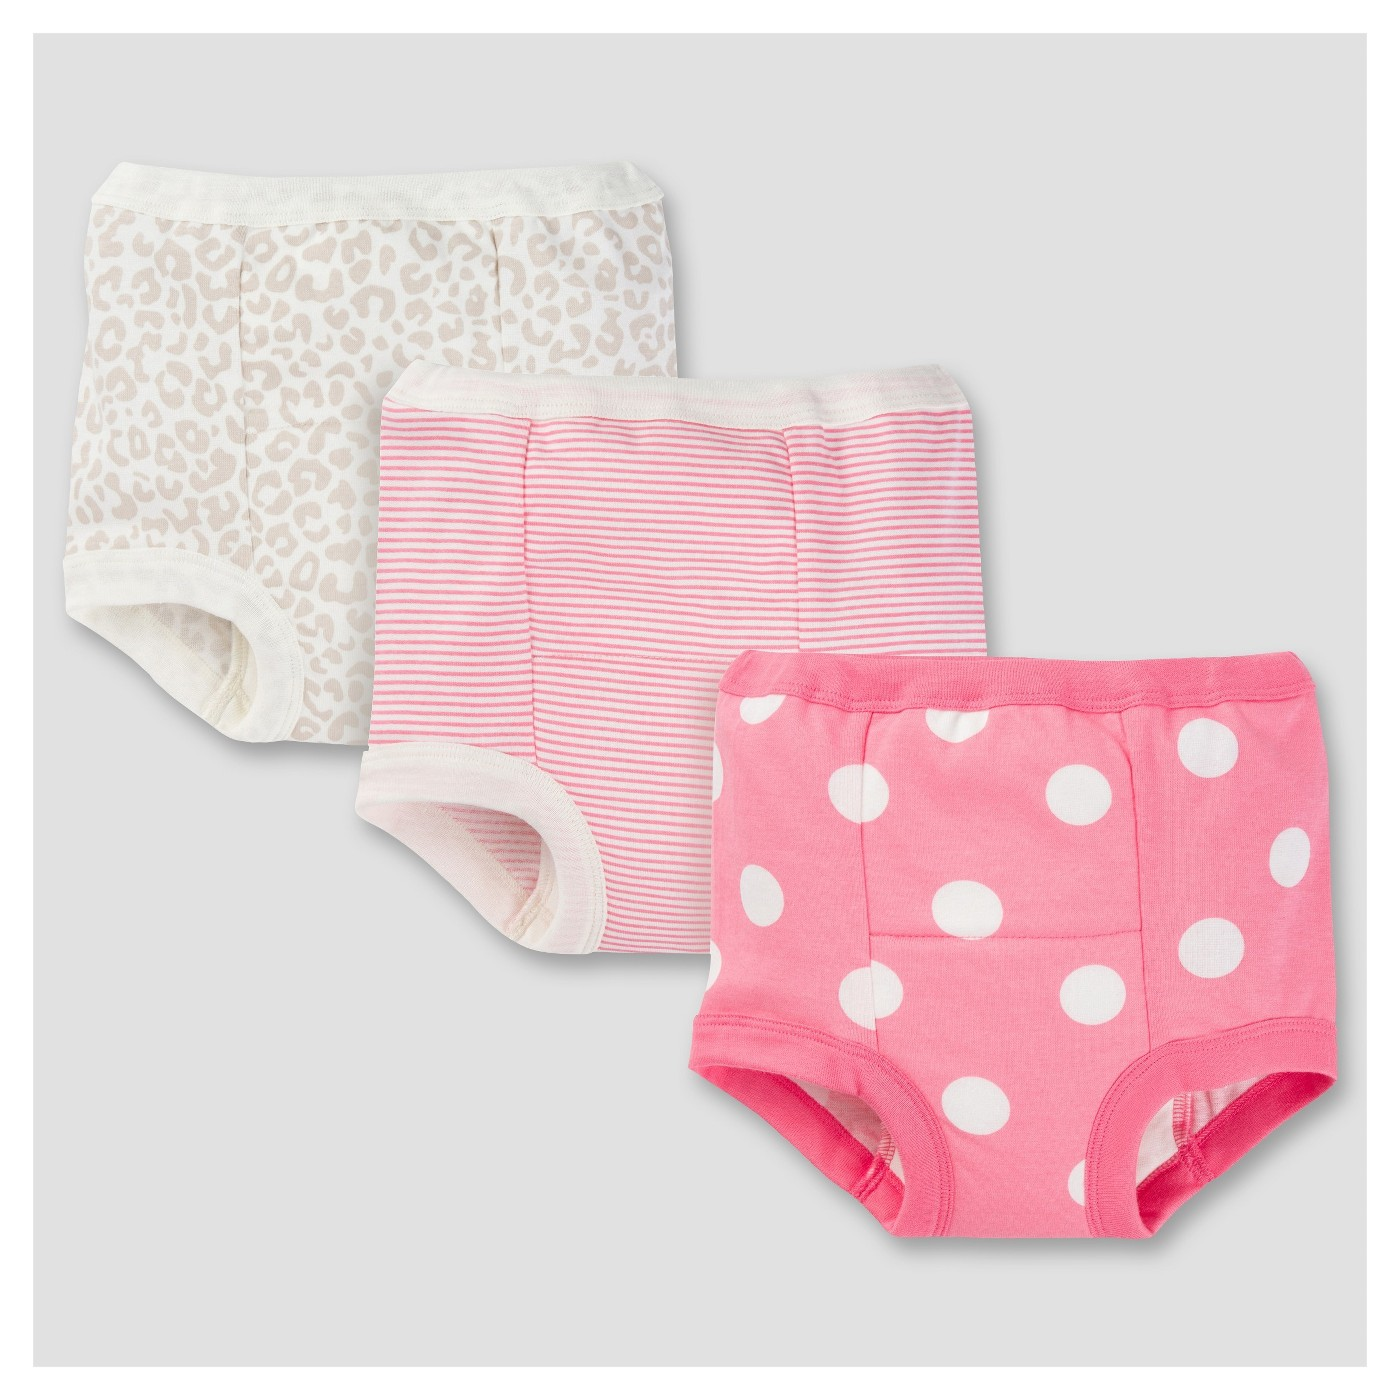 Toddler Girls' 3pk Print Training Pants - Leopard Print - Gerber® - image 1 of 6